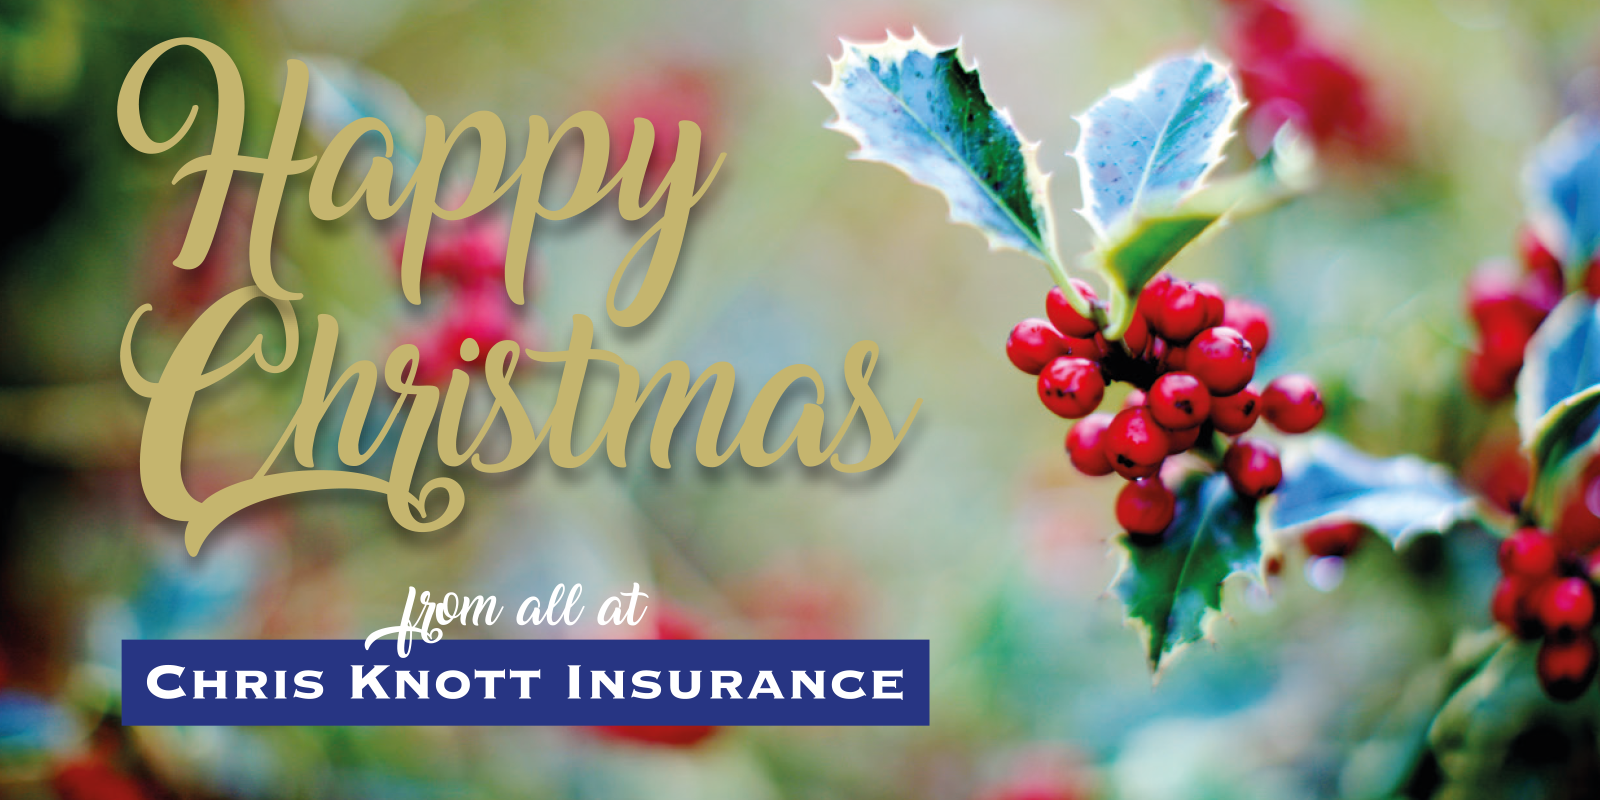 Happy Christmas from all at Chris Knott Insurance